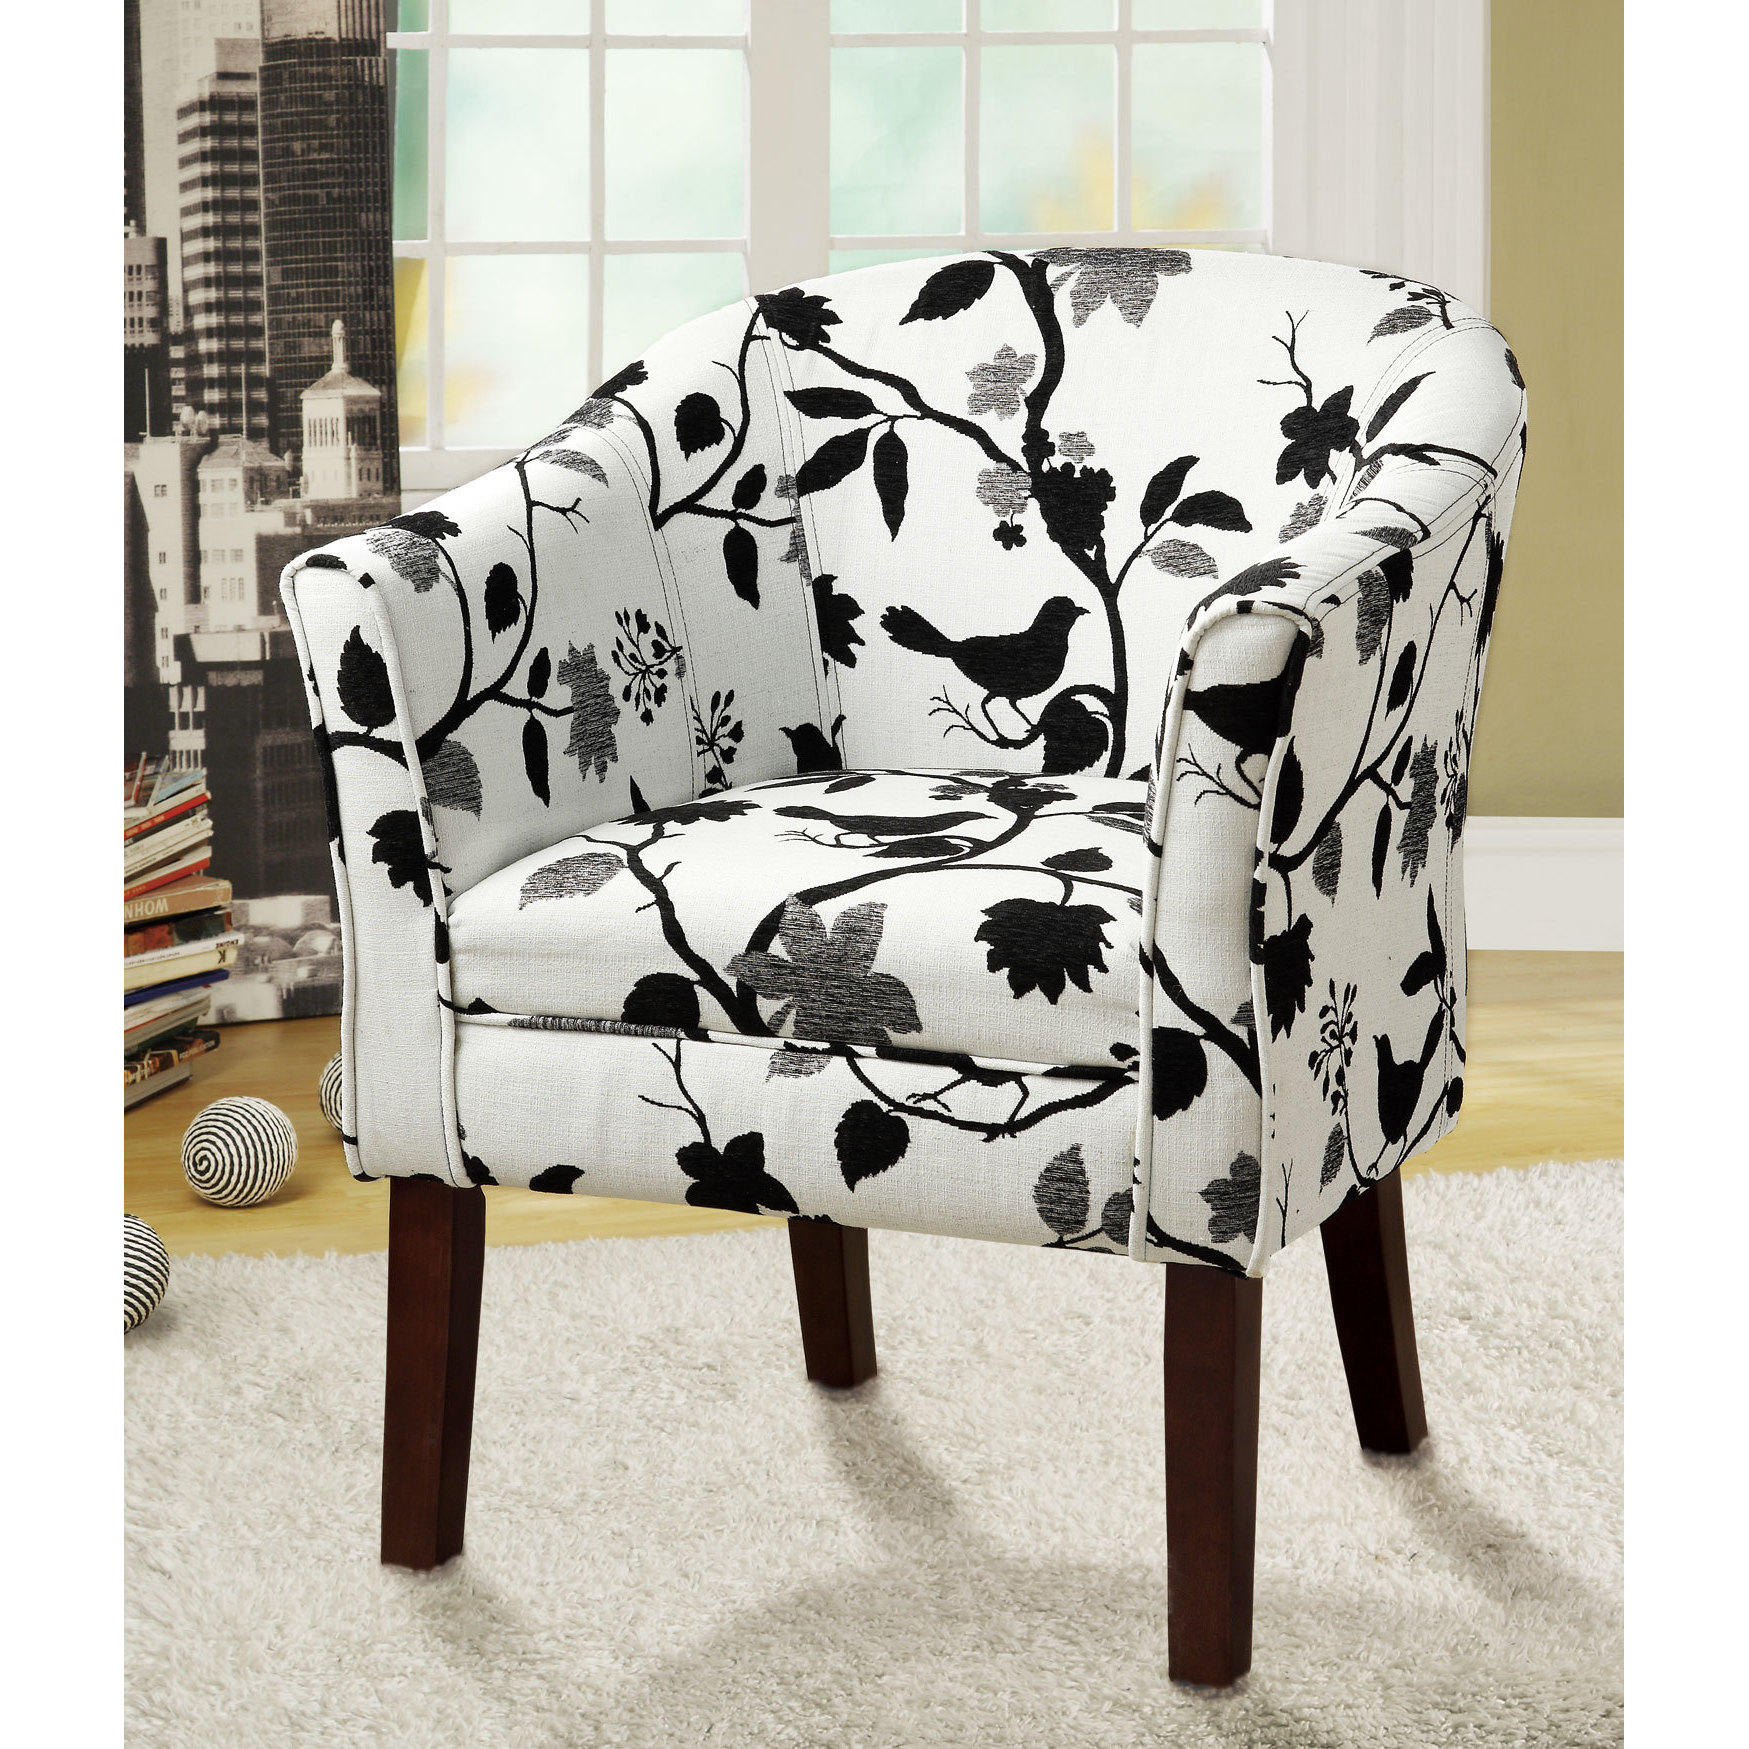 Coaster Company Black And White Bird Print Accent Chair 21032250898